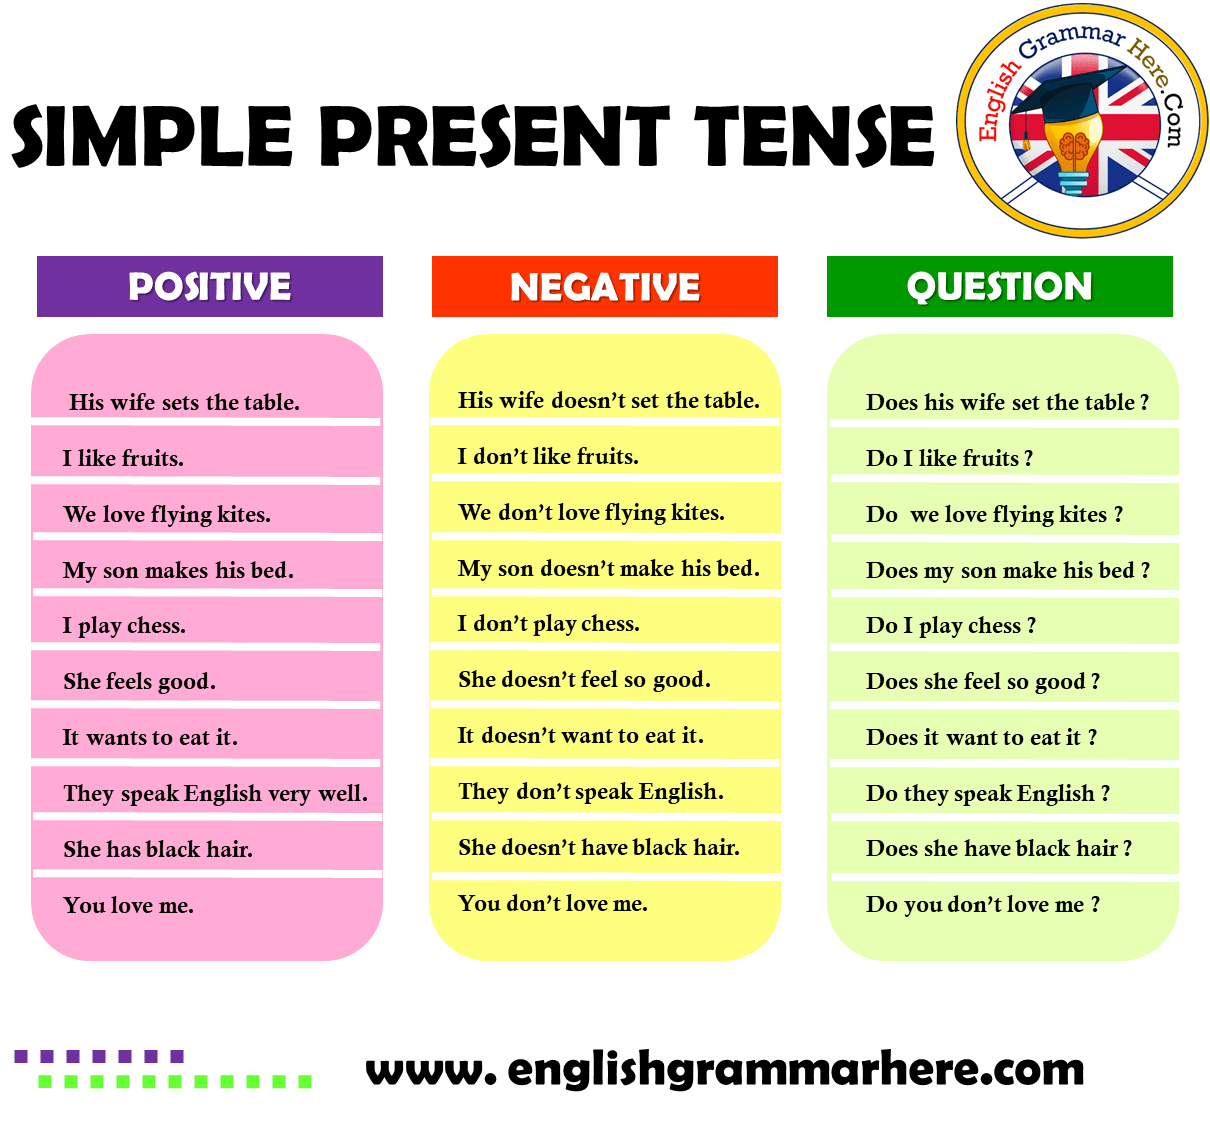 Simple Present Tense Positive Negative Question Examples